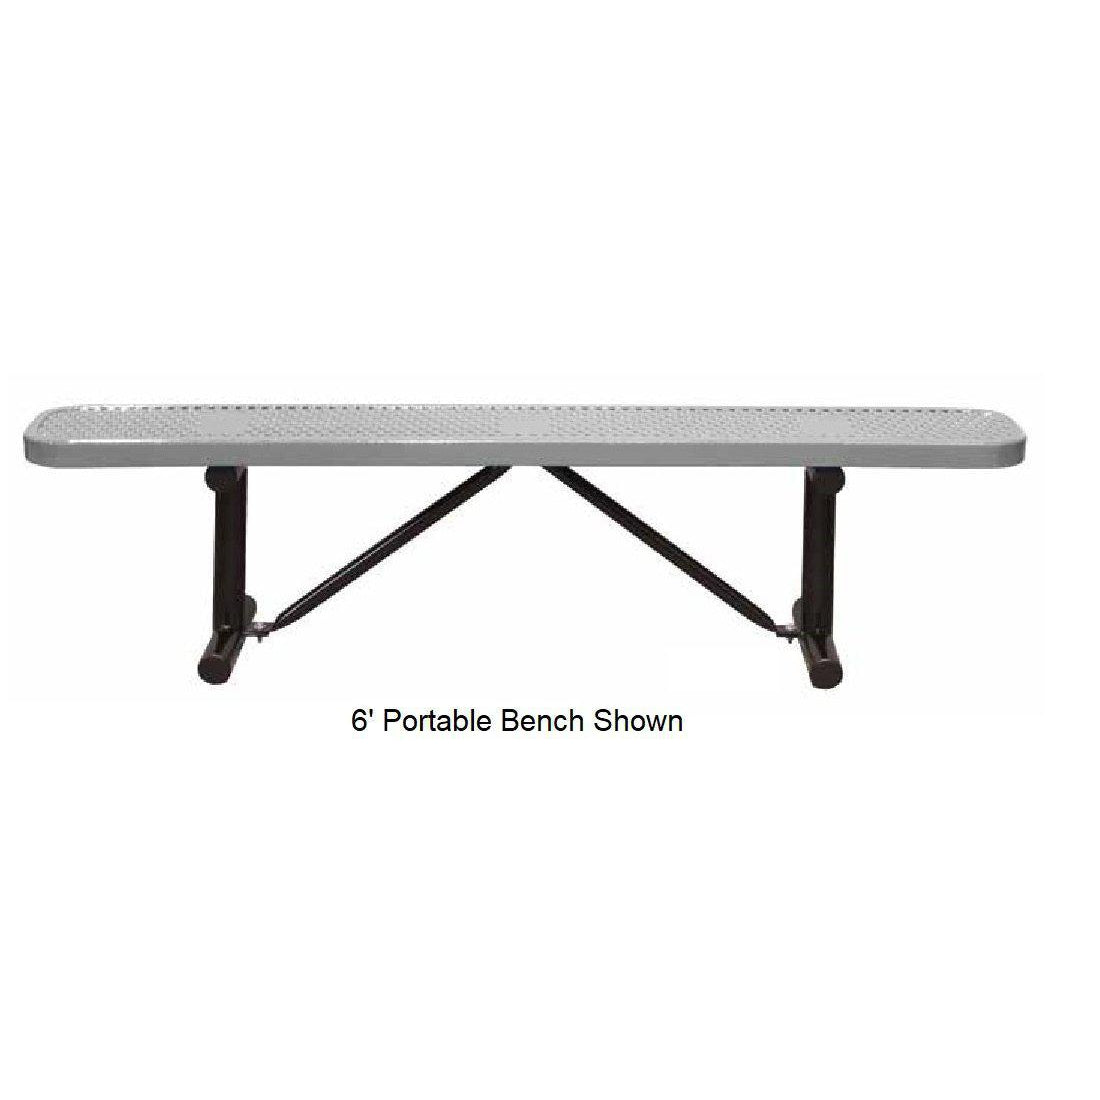 10' Standard Perforated Bench Without Back